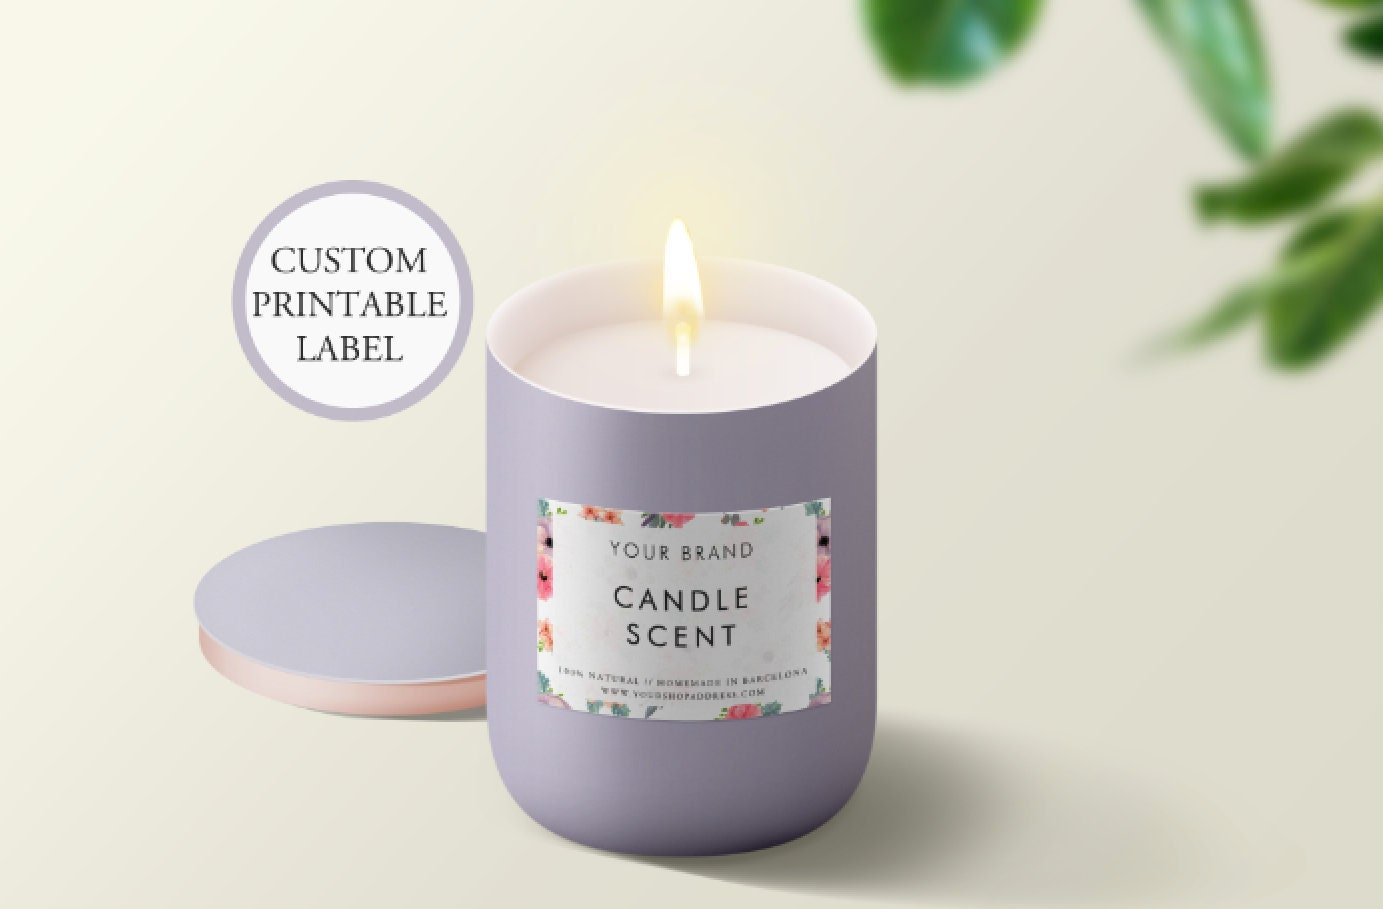 Custom printable candle labels custom candle packaging custom product labels product packaging labels design custom candle sticker